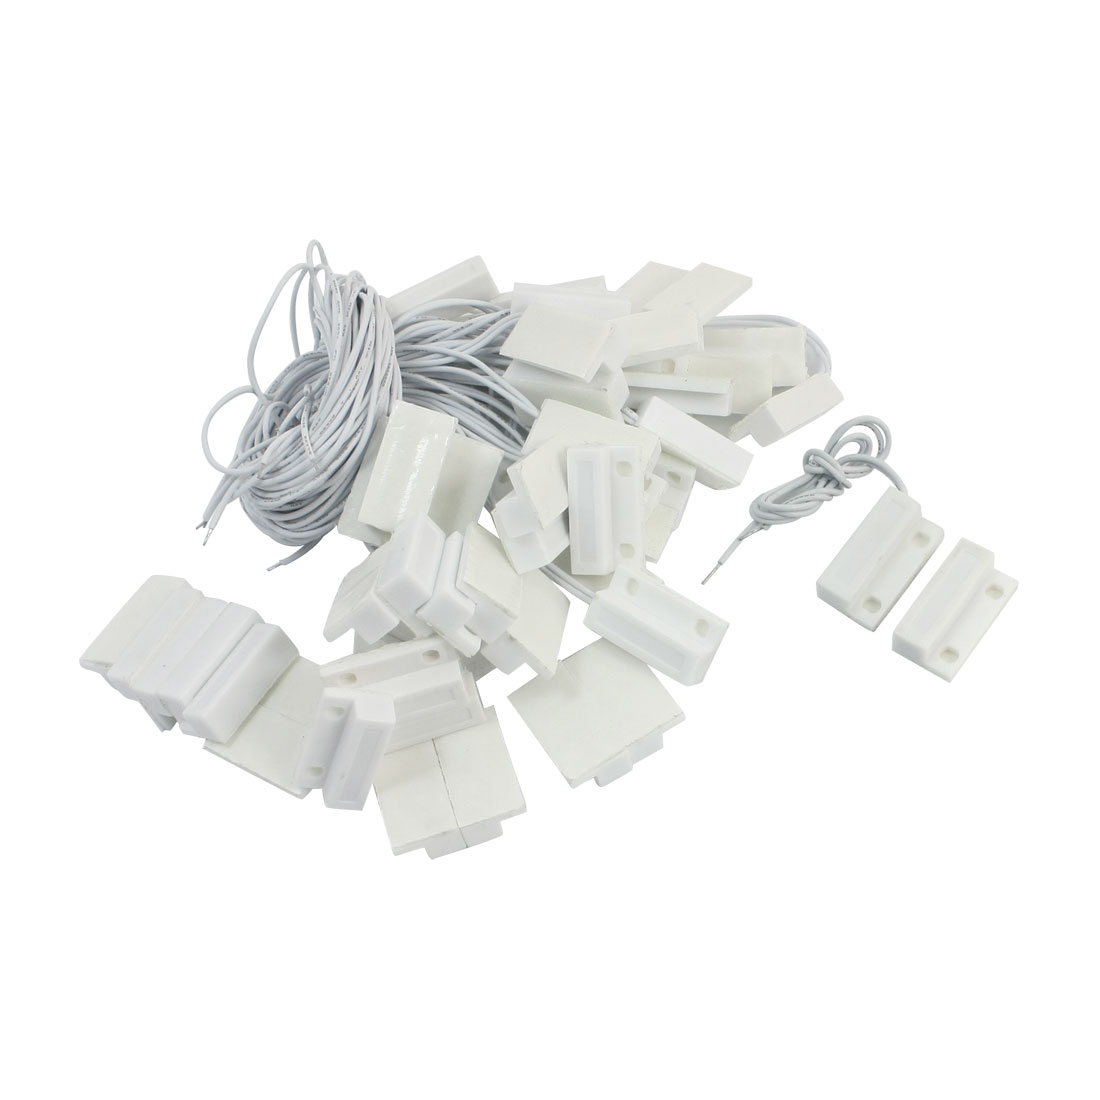 30Pairs NO Door Window Contact Magnetic Reed Switch Security Alarm Adhesived